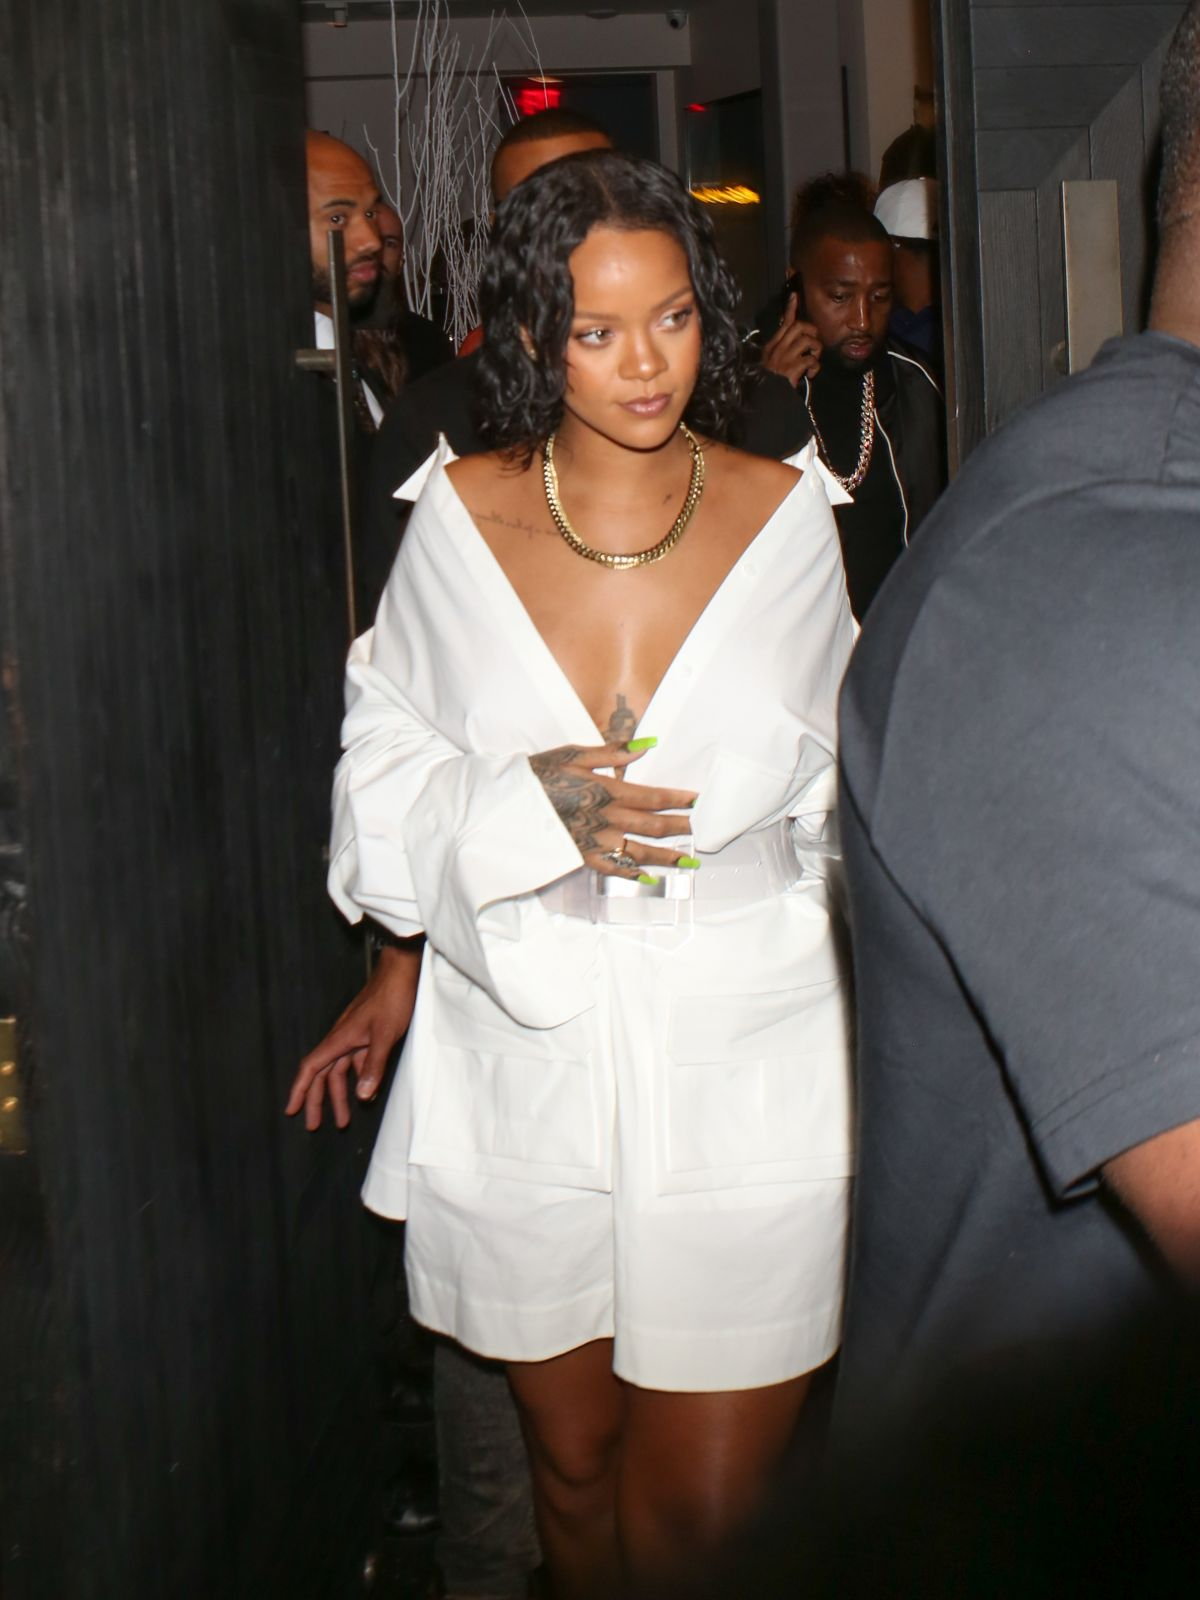 RIHANNA at Revolve Launch: Madeworn x Roc96 Capsule in Los Angeles 05/31/2017